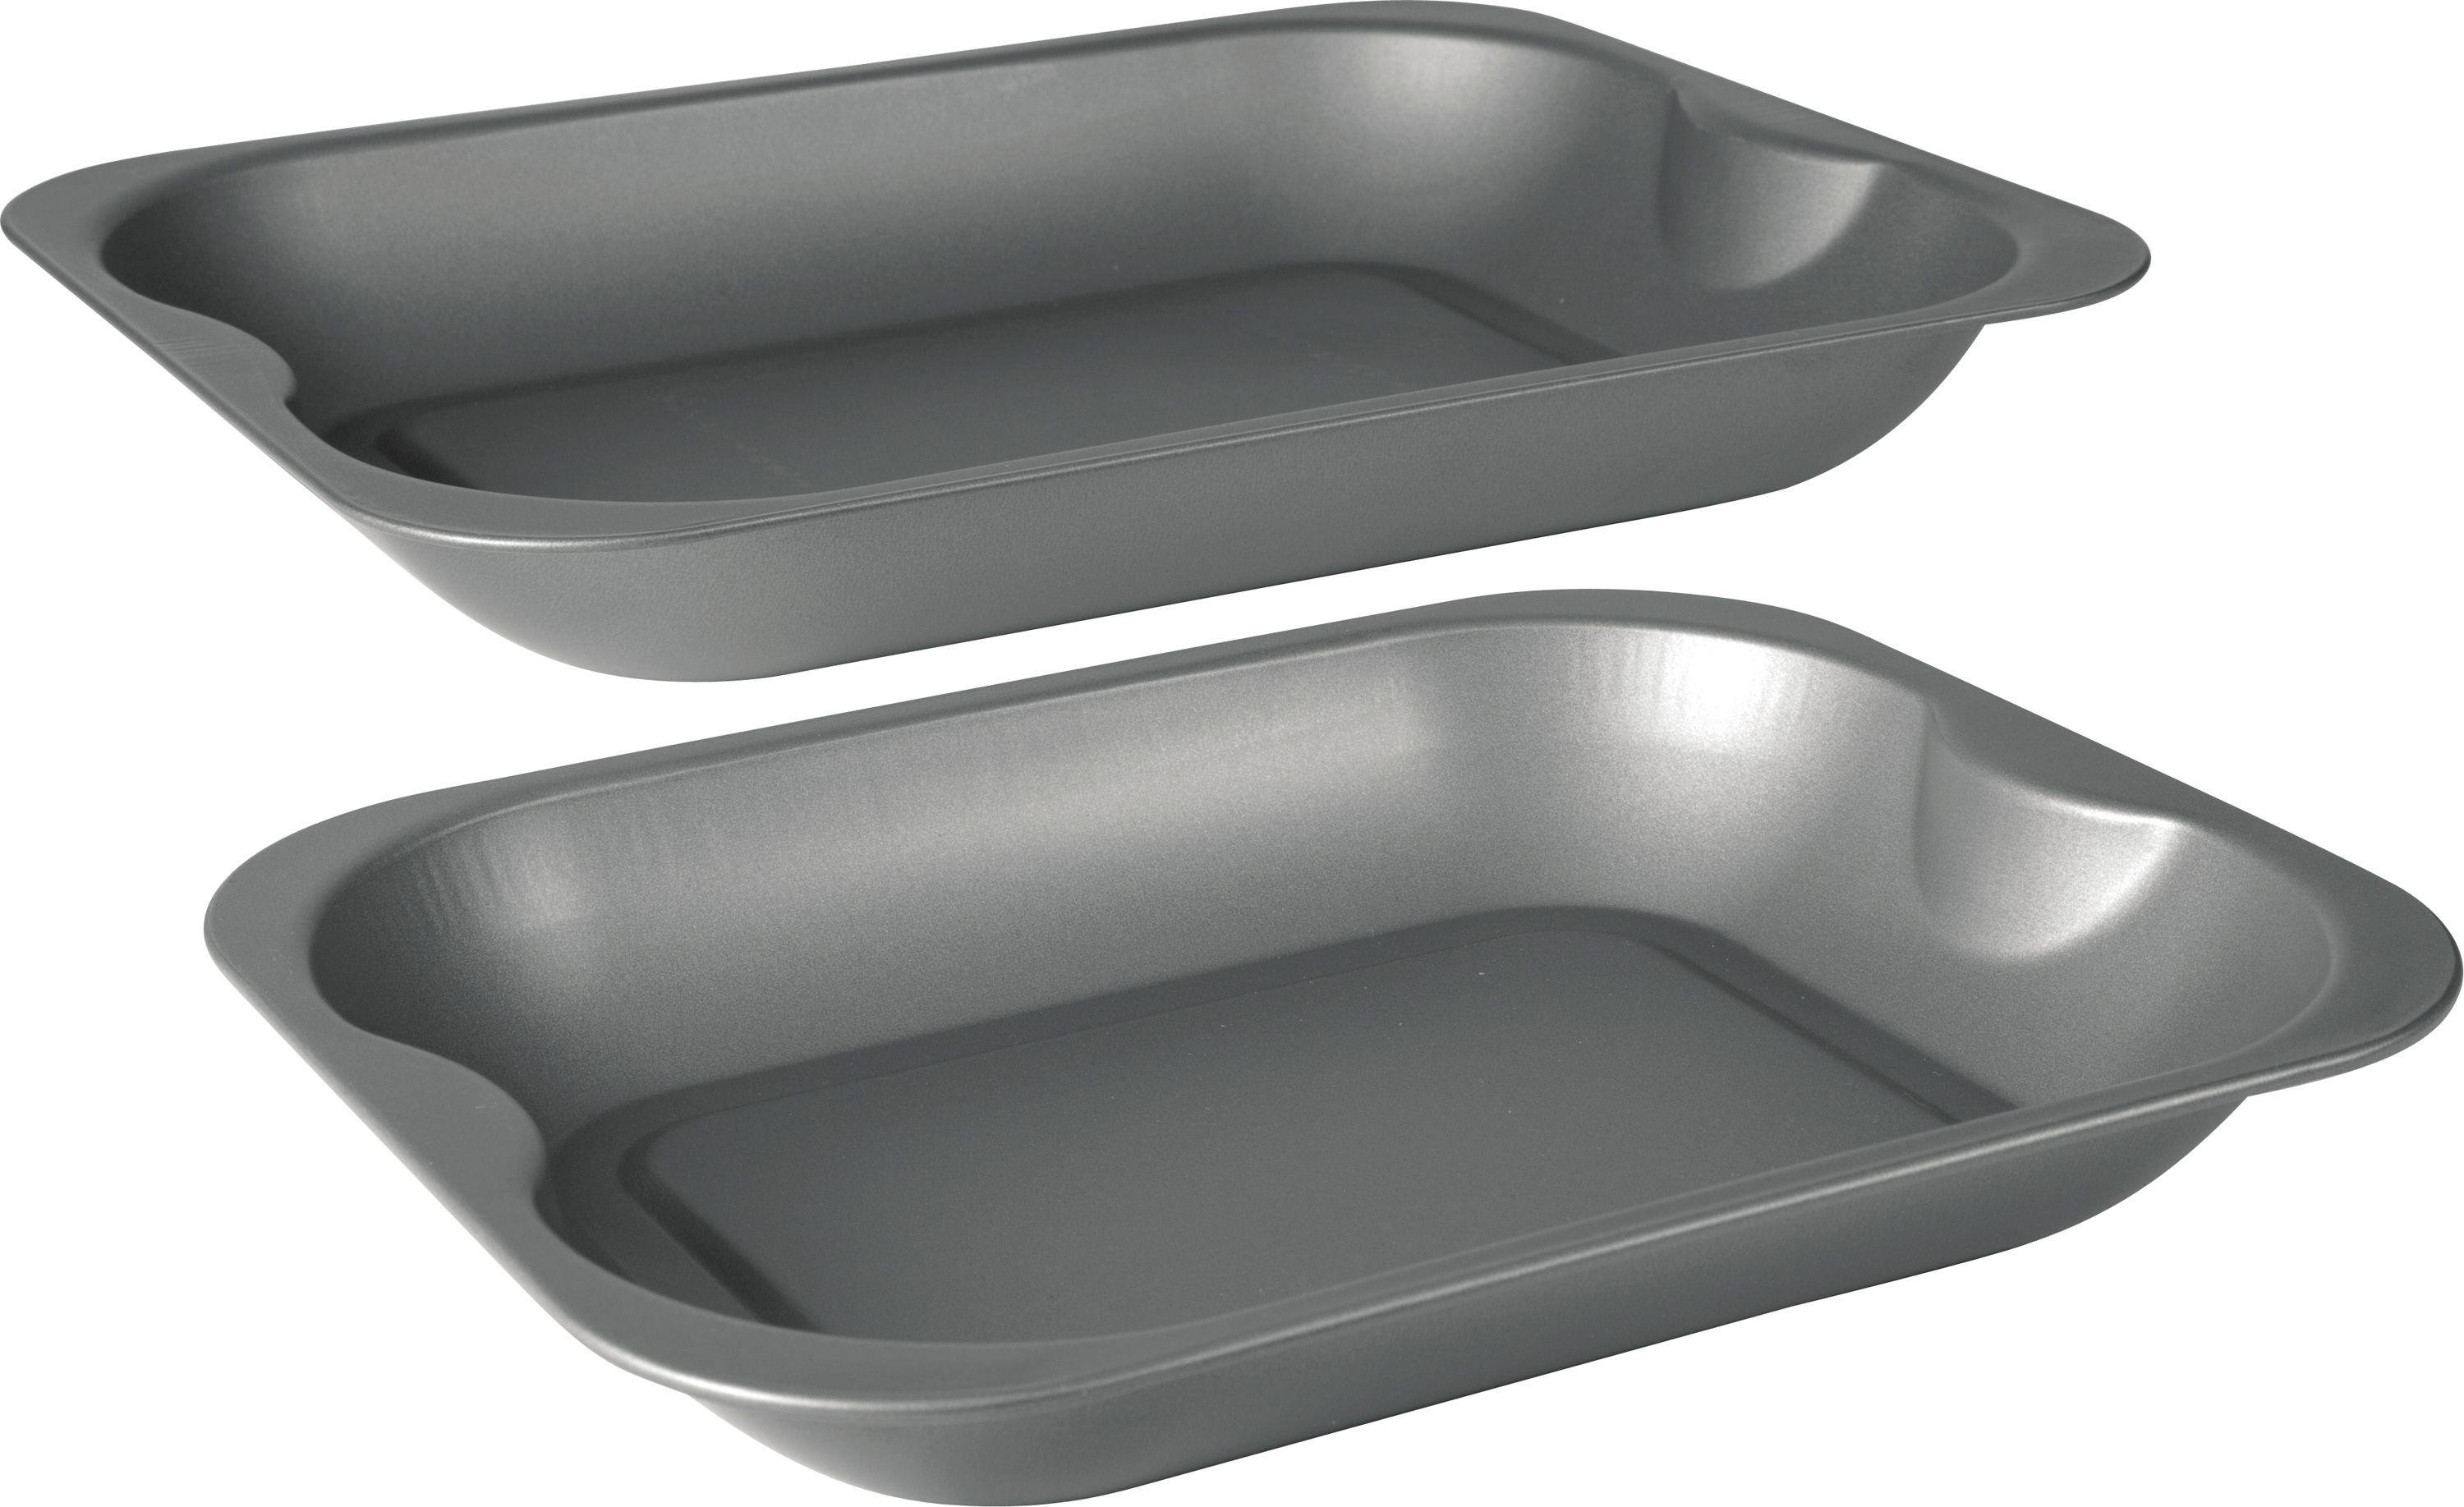 Image of HOME - Set of 2 Non-Stick Roasters